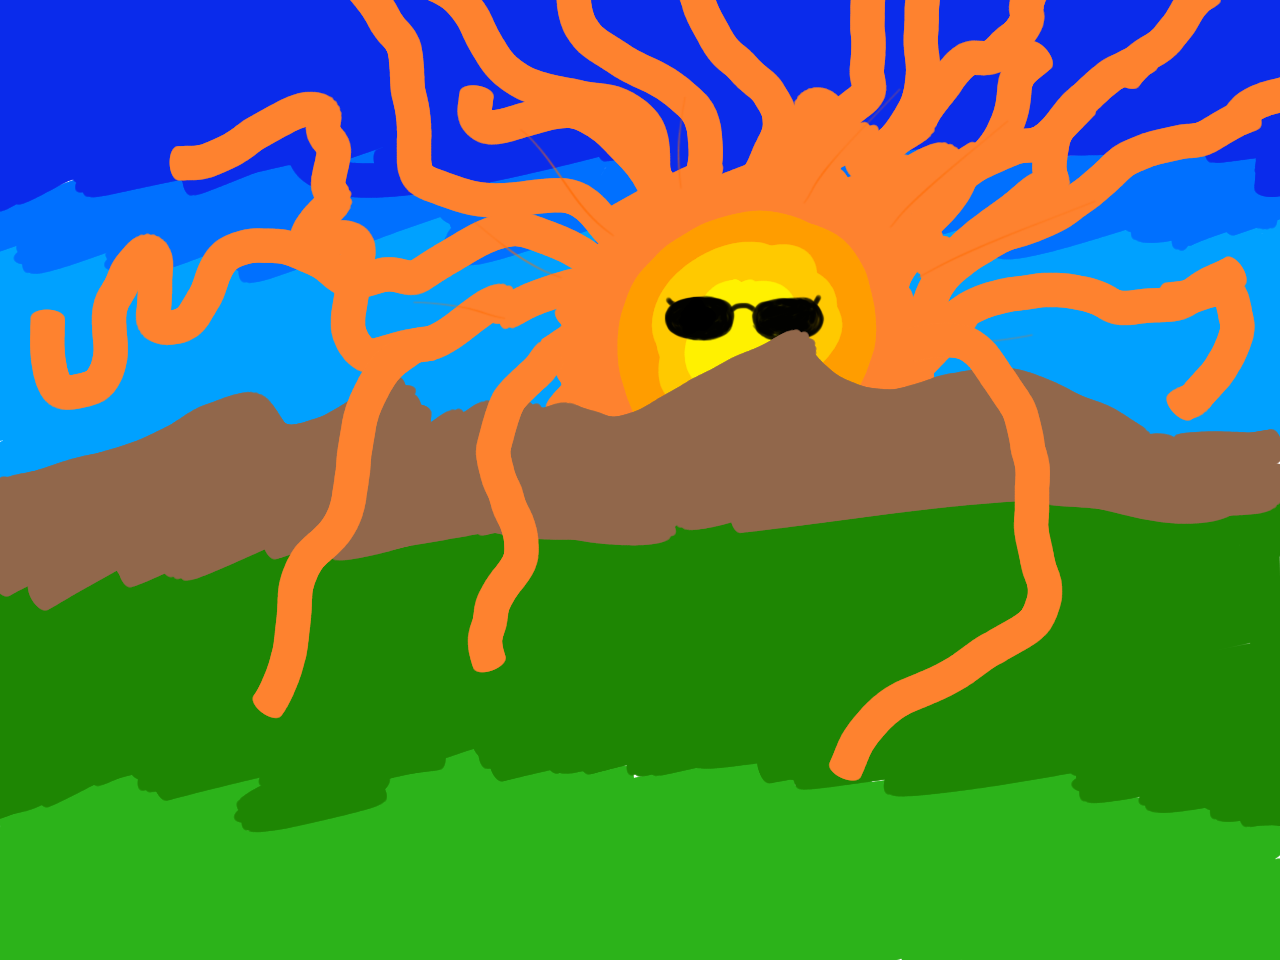 Cthulhu Sunset. Not how I was expecting this to turn out.